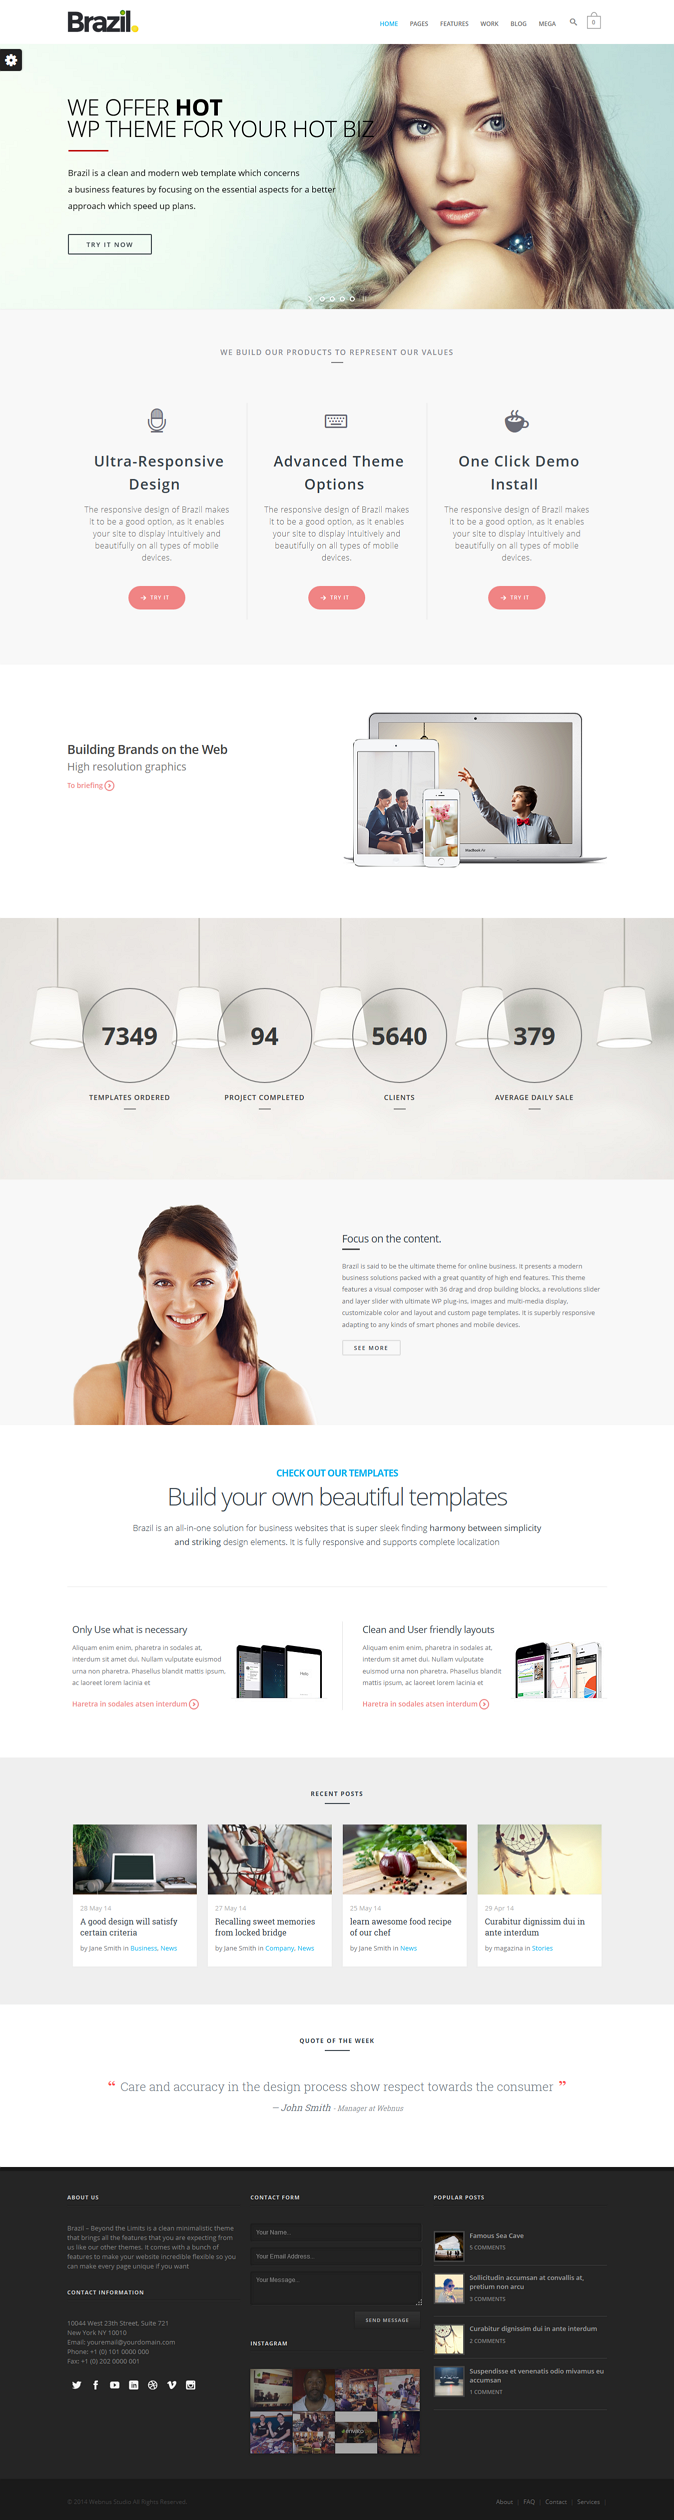 Brazil is a Responsive, Retina-Ready WordPress theme with a minimalist, simple, elegant and clea ...